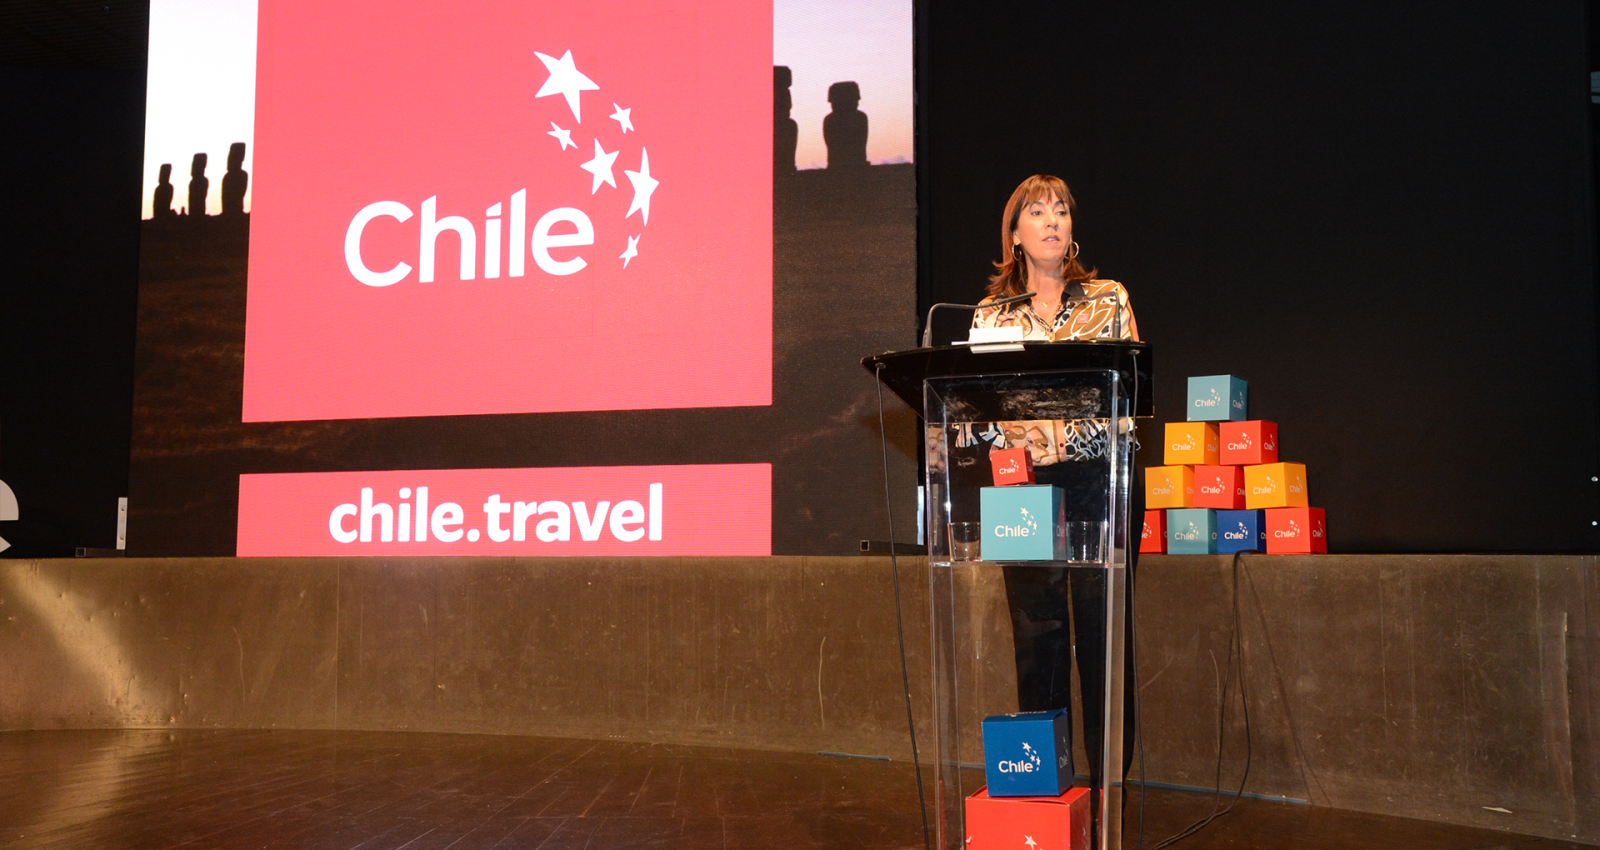 evento-chile-travel-campana-fitur-2020-3